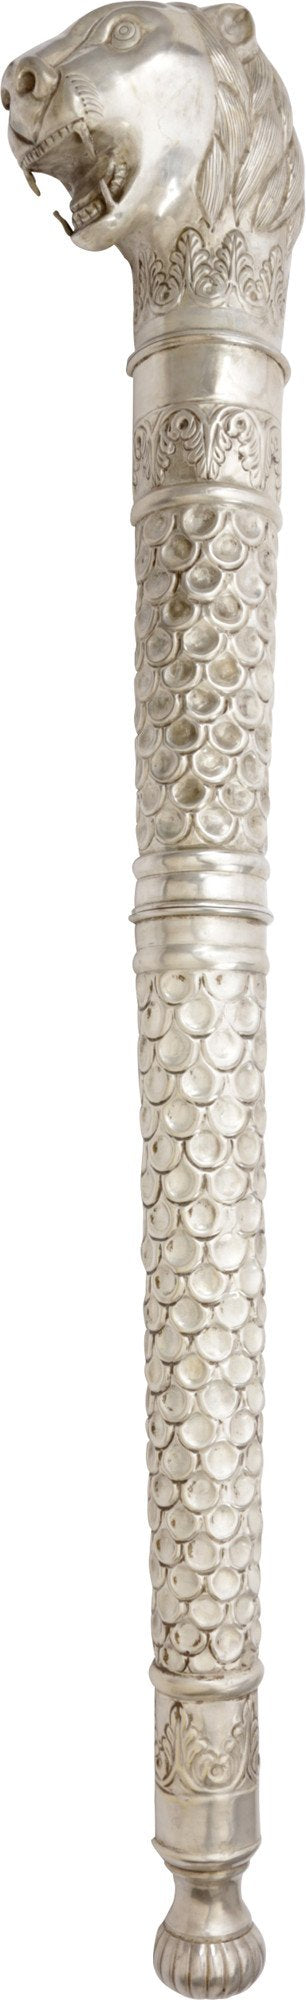 Extraordinary Indian Ceremonial Mace - Product